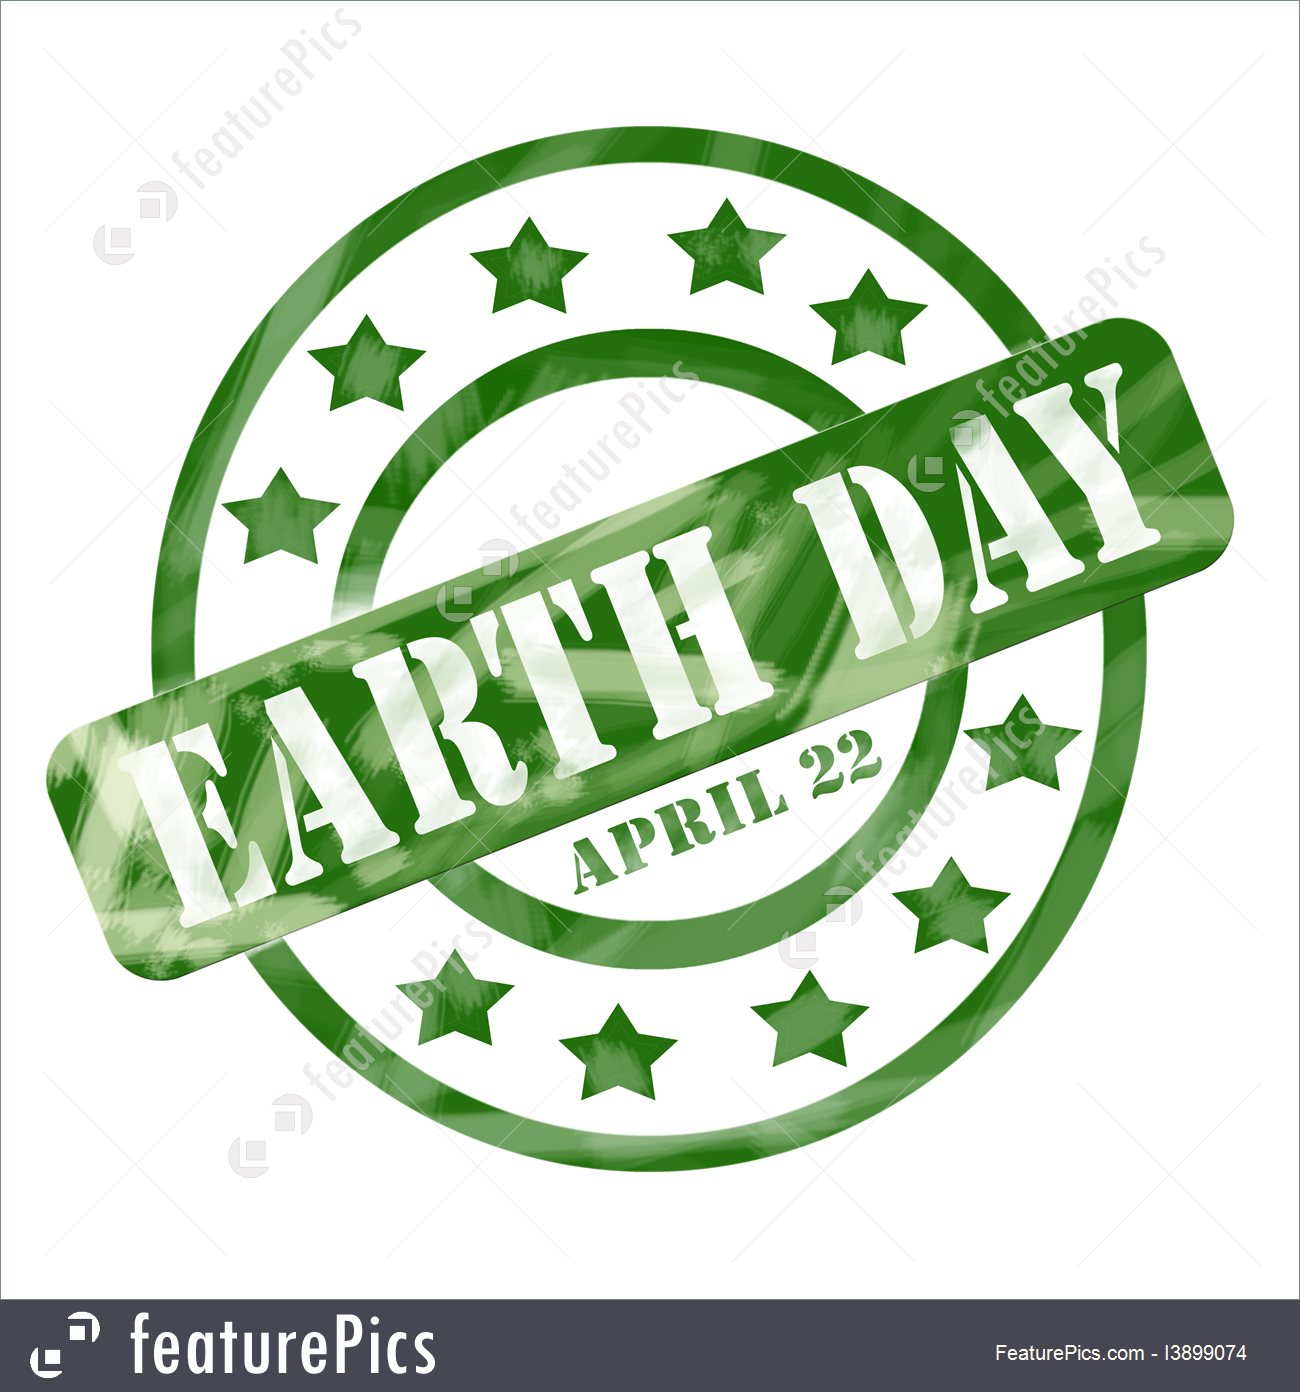 Free clipart earth day april 22 svg free Green Weathered Earth Day April 22 Stamp Circles And Stars Stock ... svg free